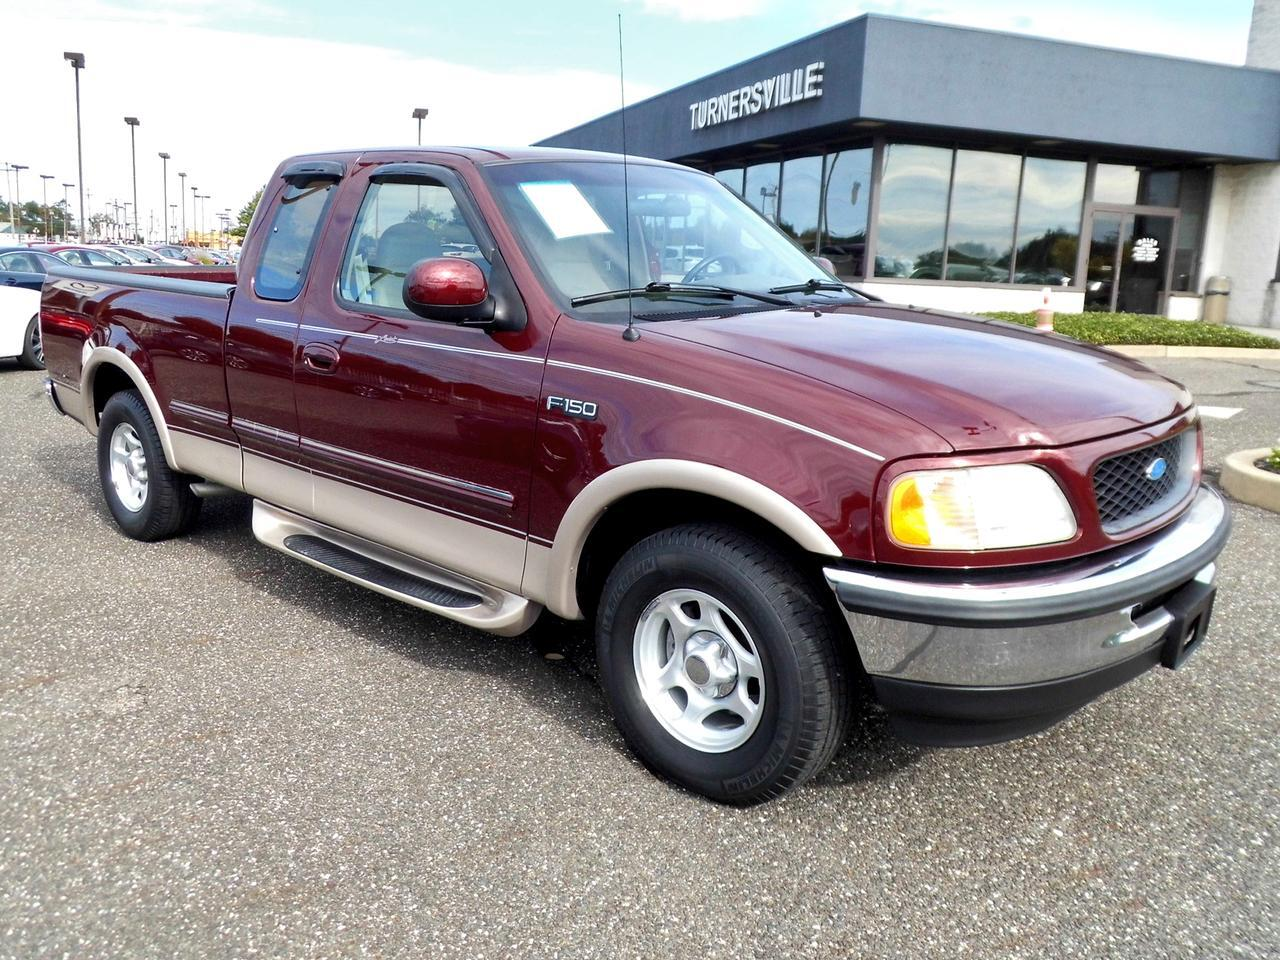 Mazda3 Vs Mazda6 >> 1997 Ford F-150 Lariat - LEATHER Turnersville NJ 26352898